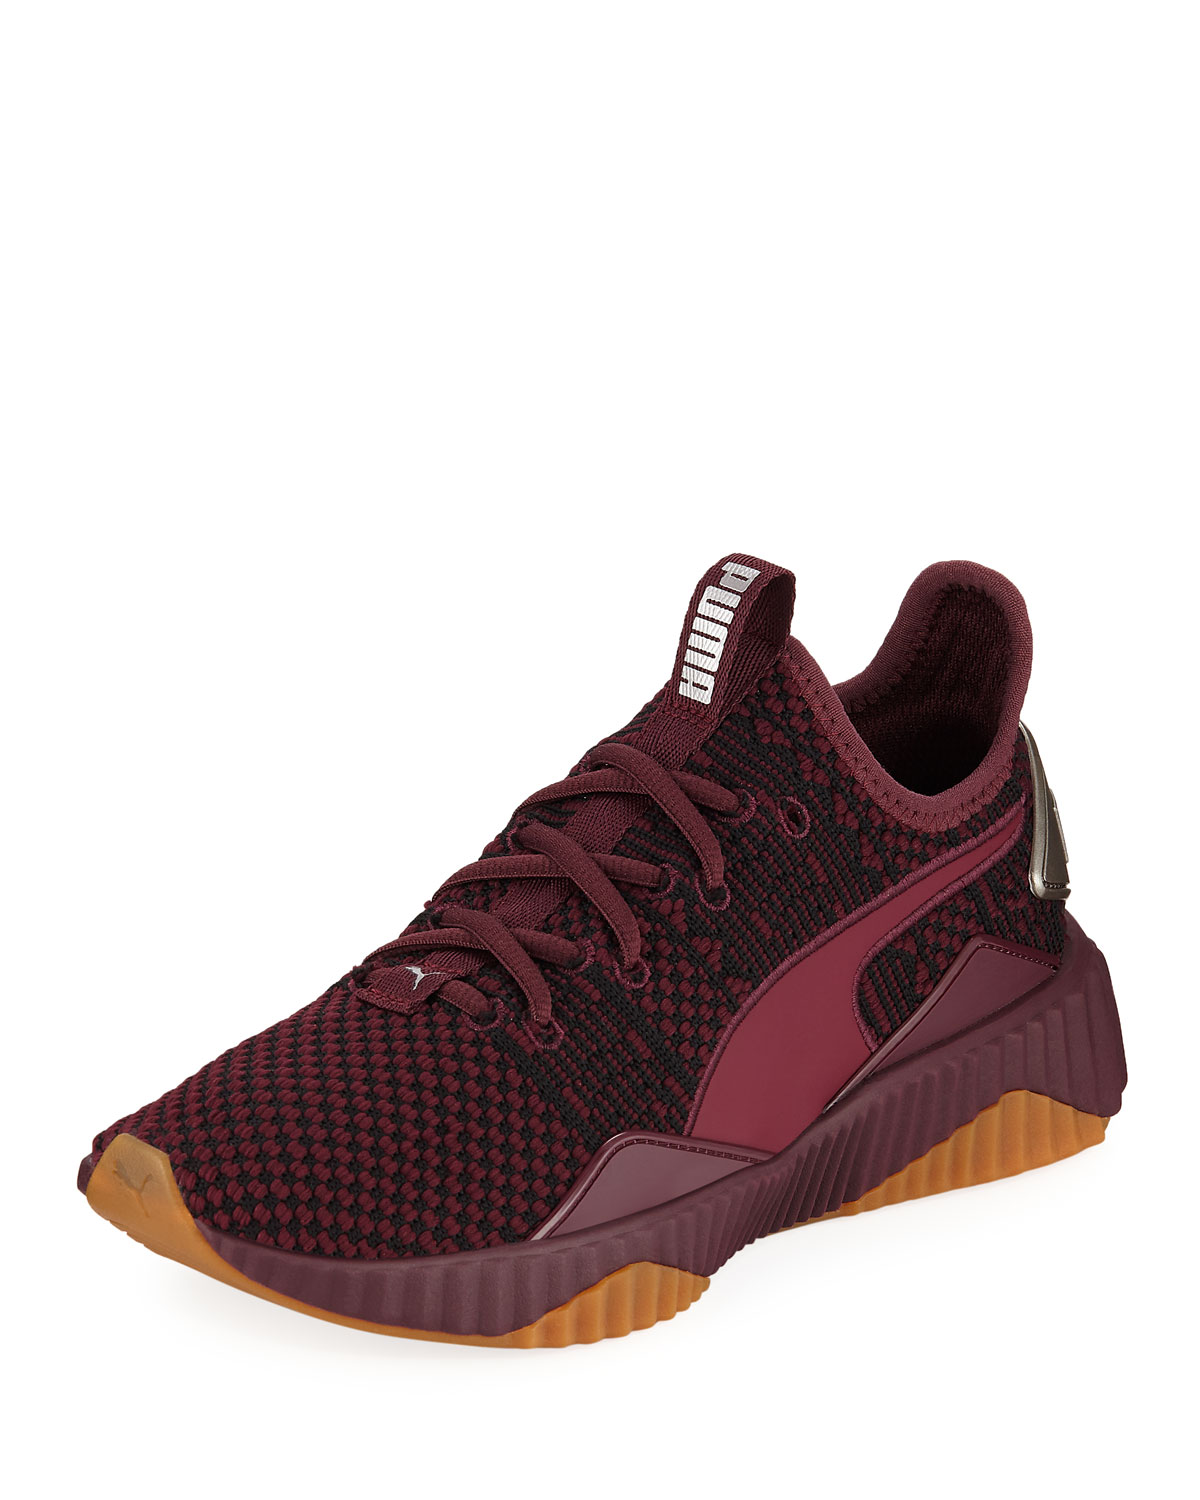 Defy Luxe Chunky Sneakers